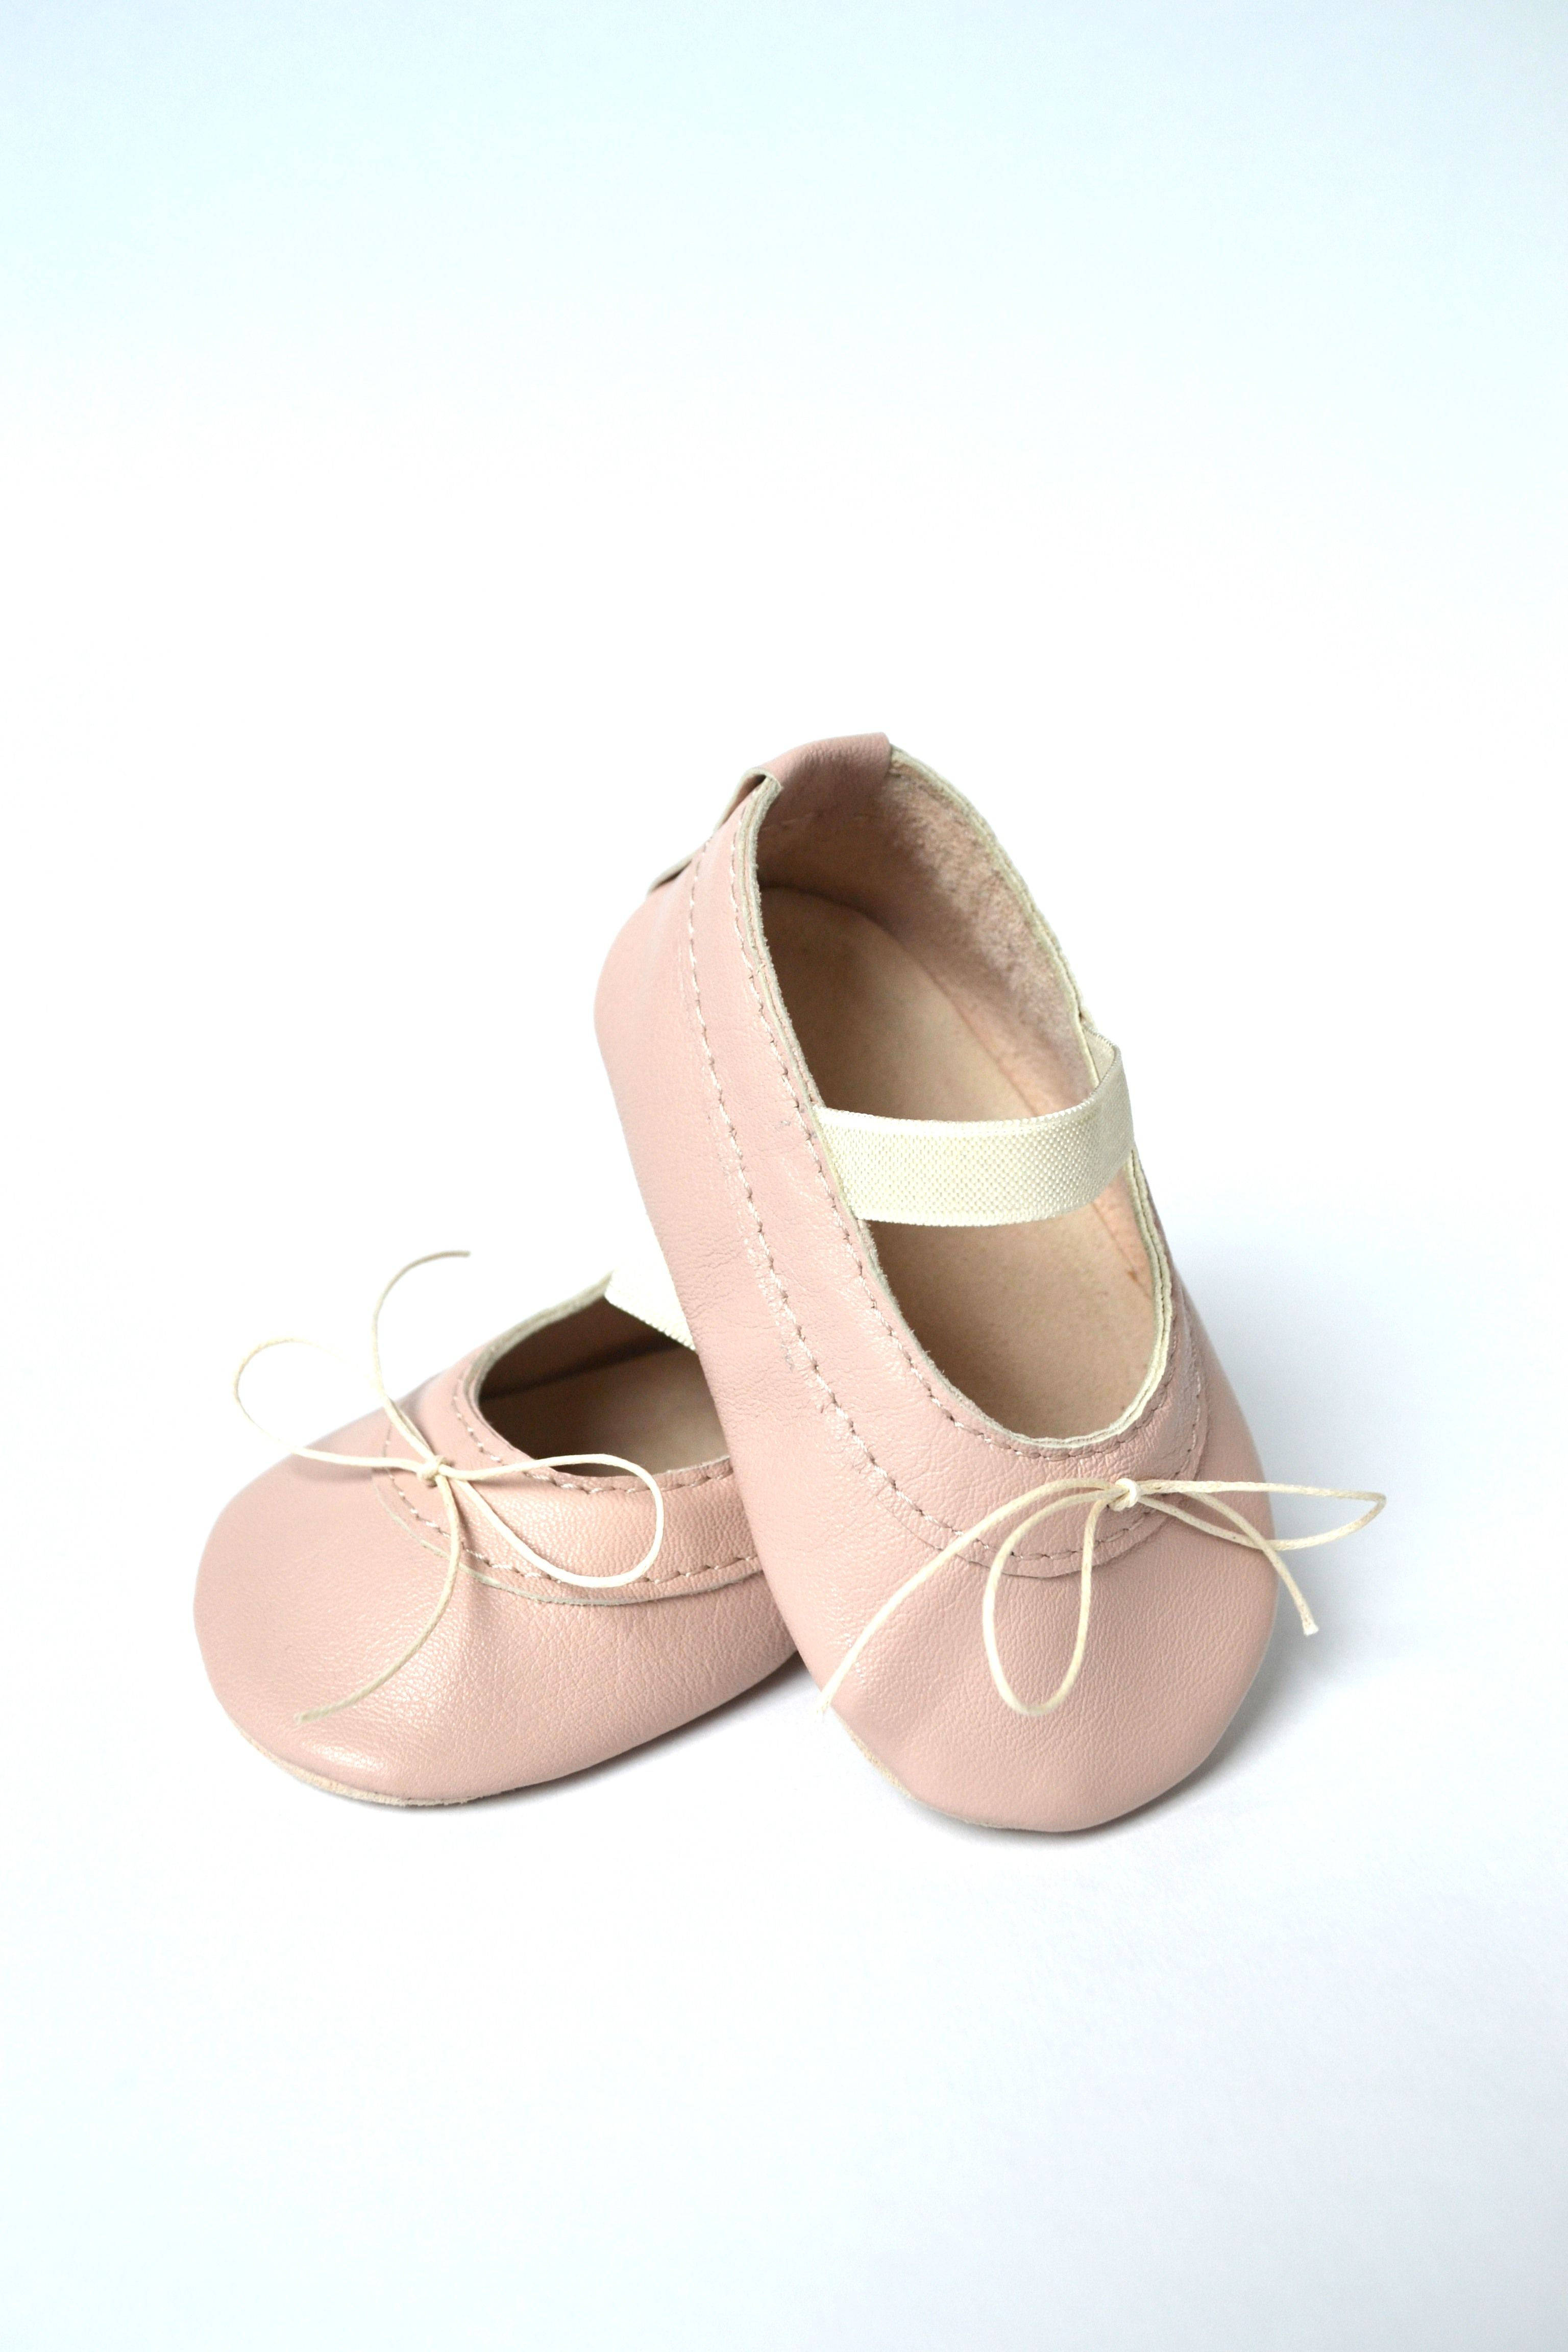 Handmade soft sole leather baby shoes Baby girl ballet shoes